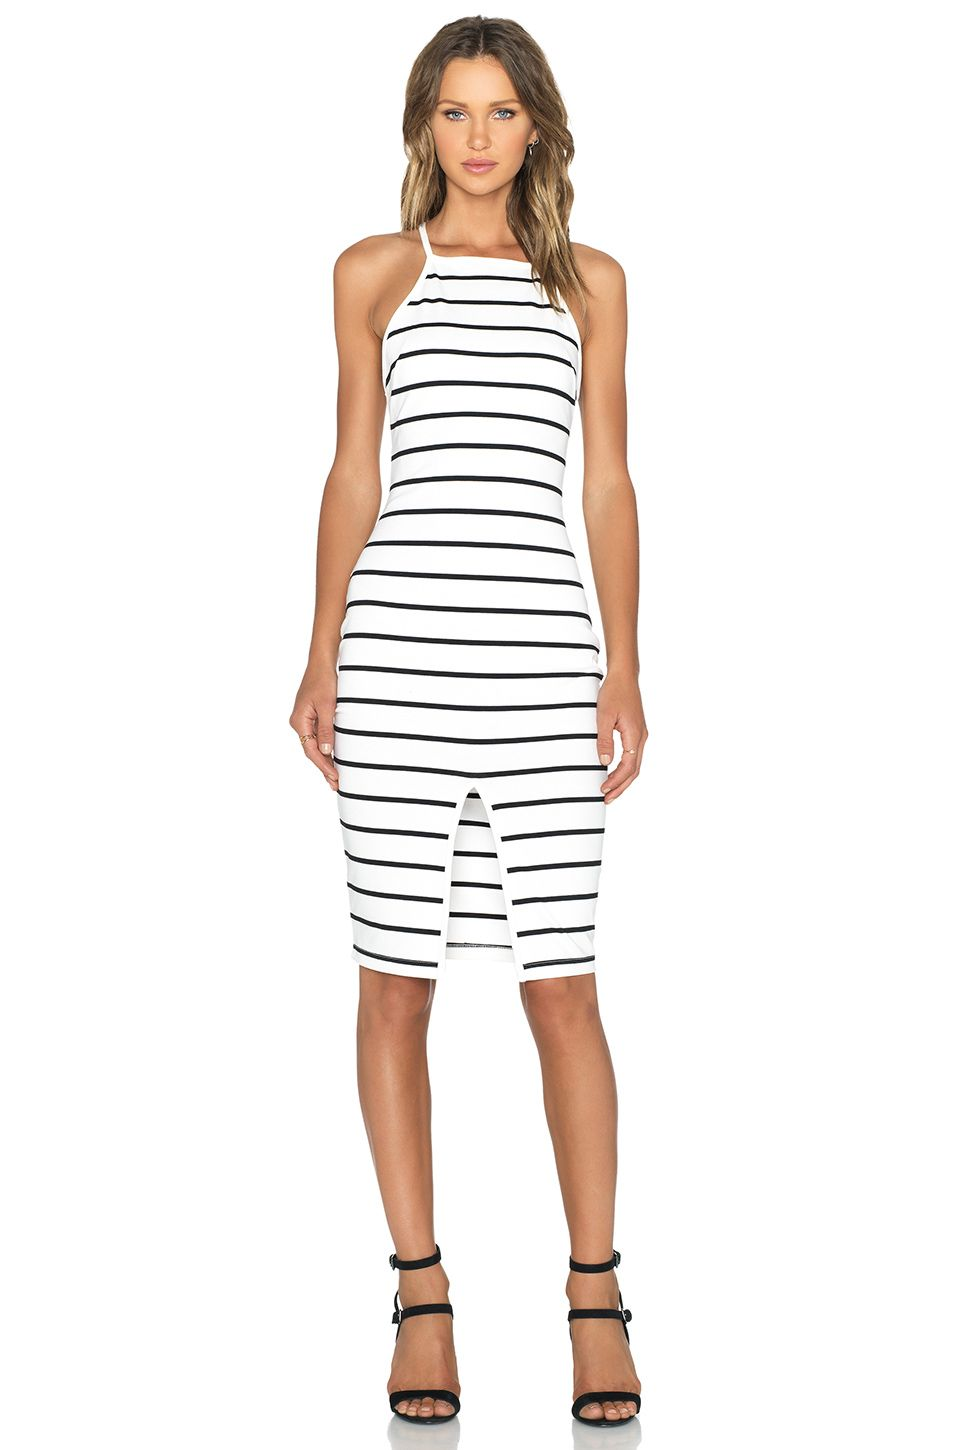 The Fifth Label Don't Panic Midi Dress in White & Black Stripe | REVOLVE